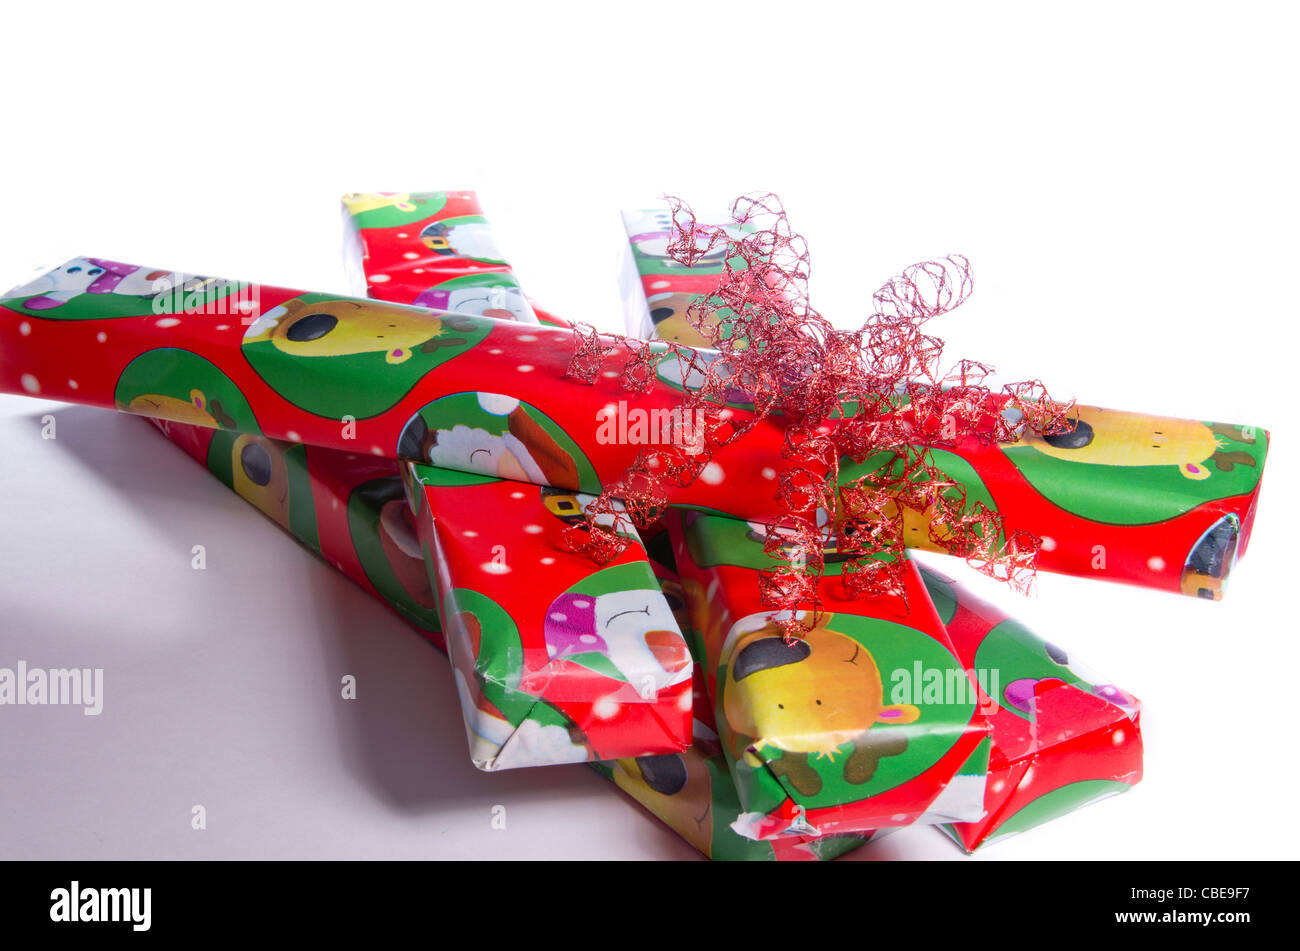 A Pile Of Christmas Gifts Wrapped In Festive Red Paper With Cartoon Reindeers On Them